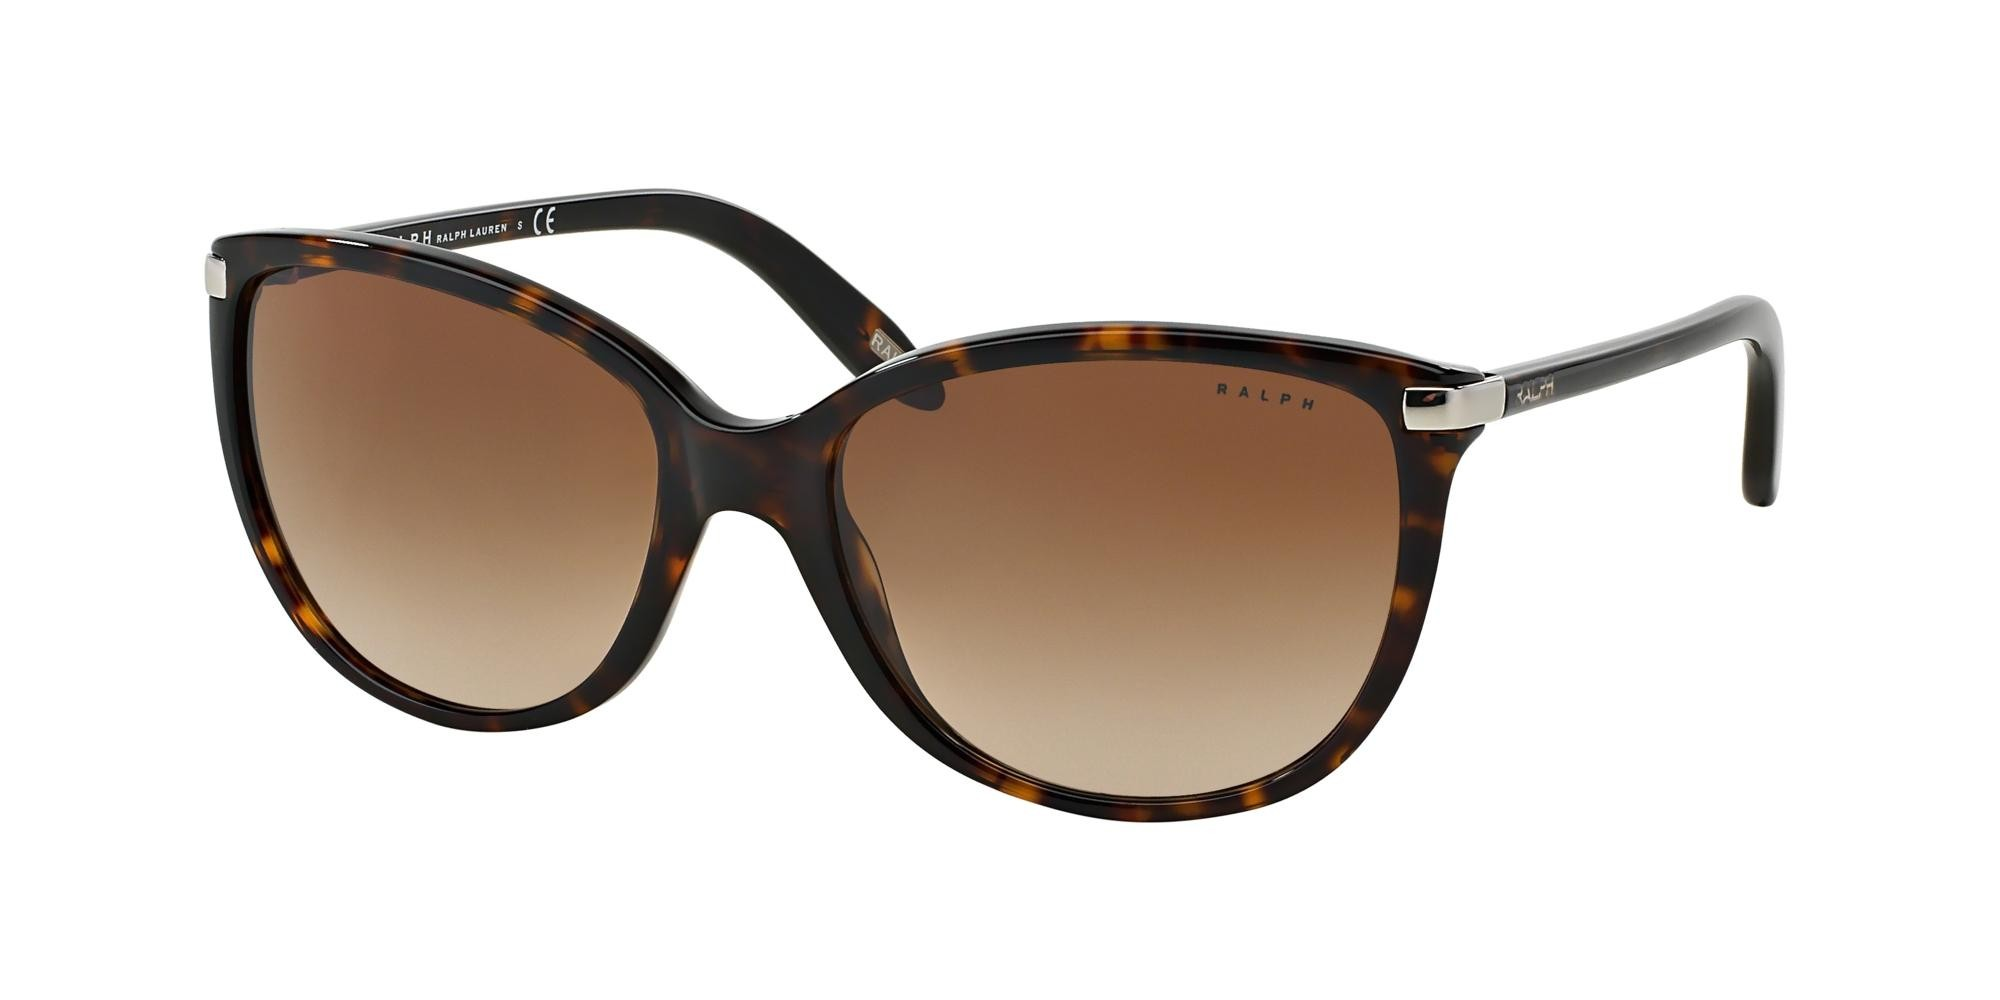 Ralph sunglasses RA 5160